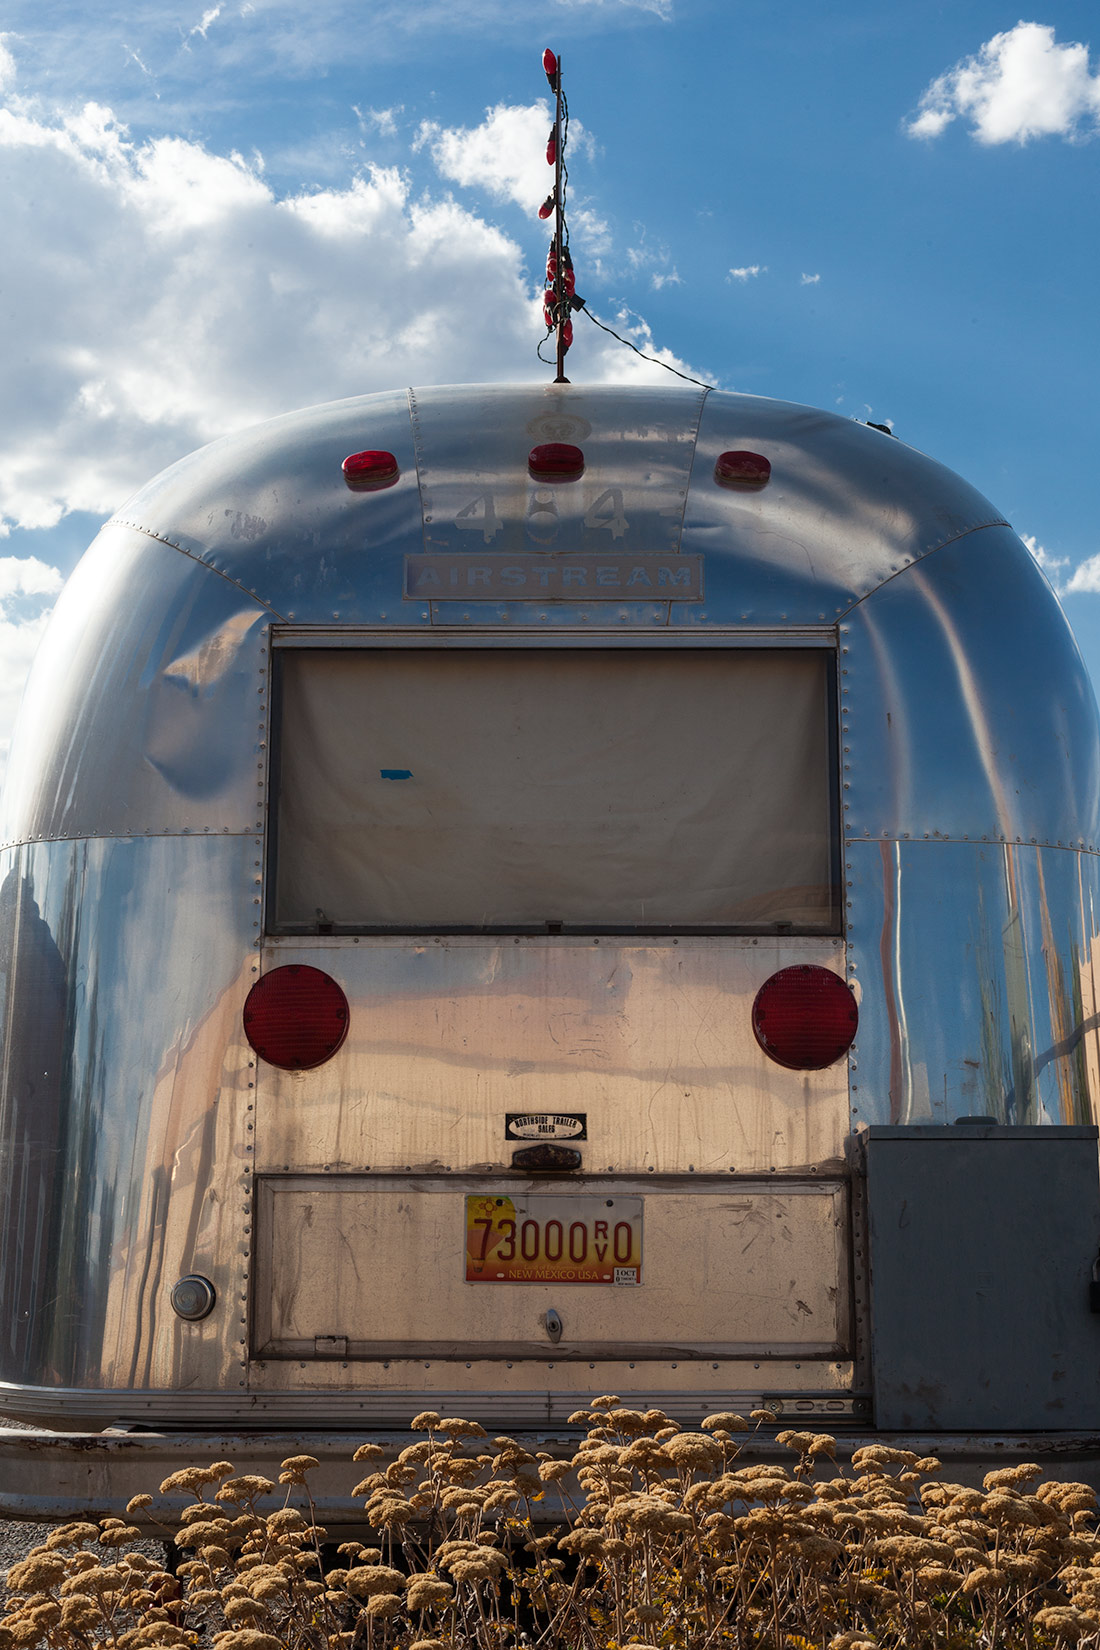 Vintage Airstream on the Streets of Albuquerque